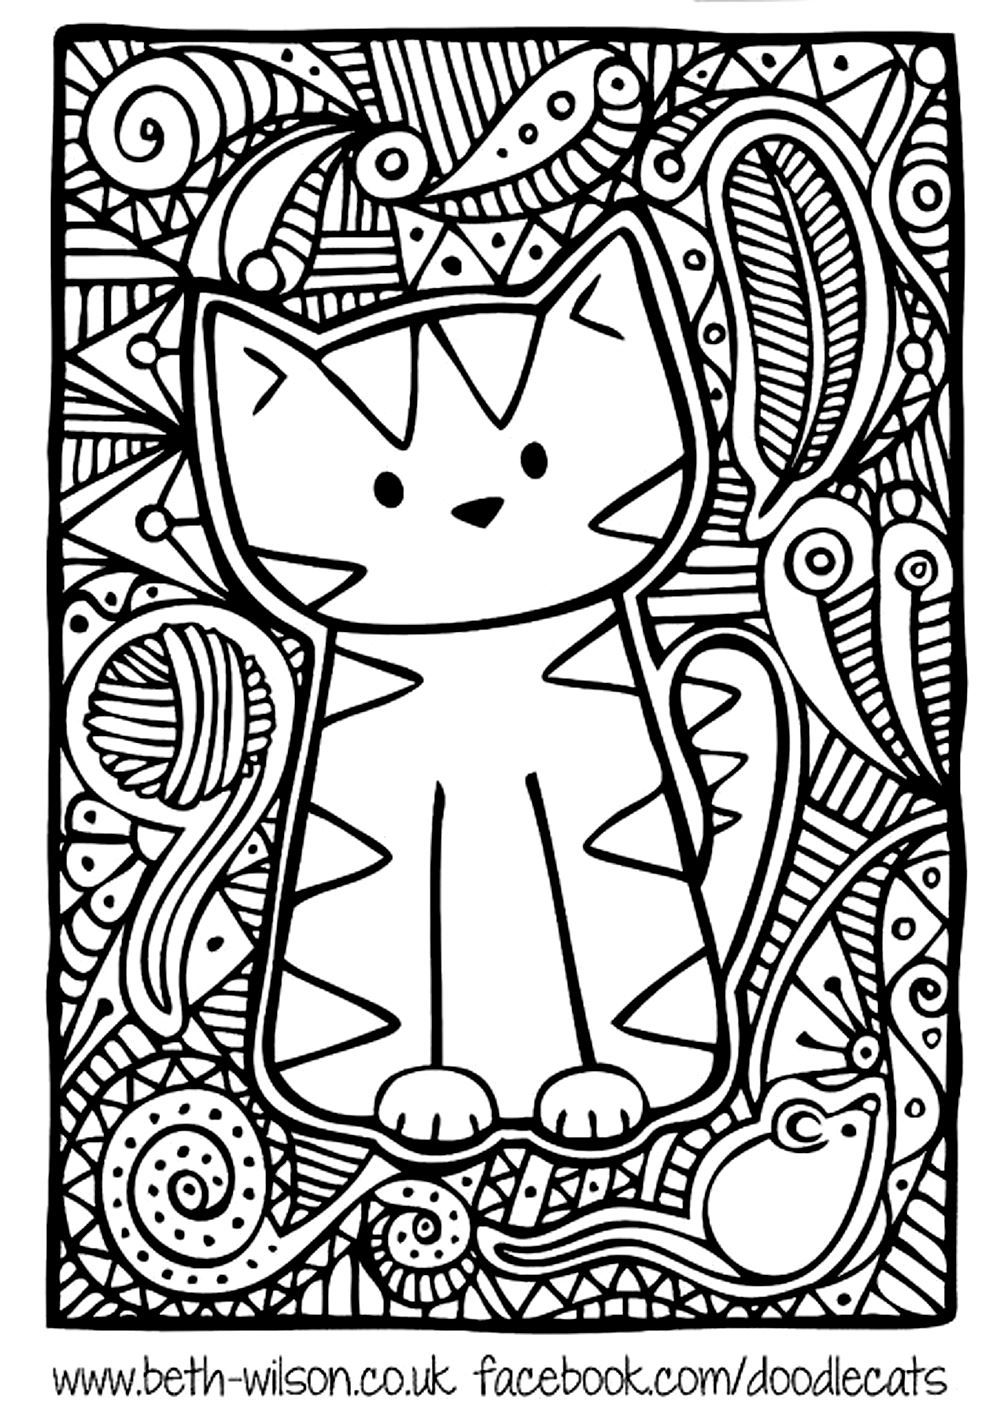 Free coloring page coloring adult difficult cute cat Easy coloring books for adults